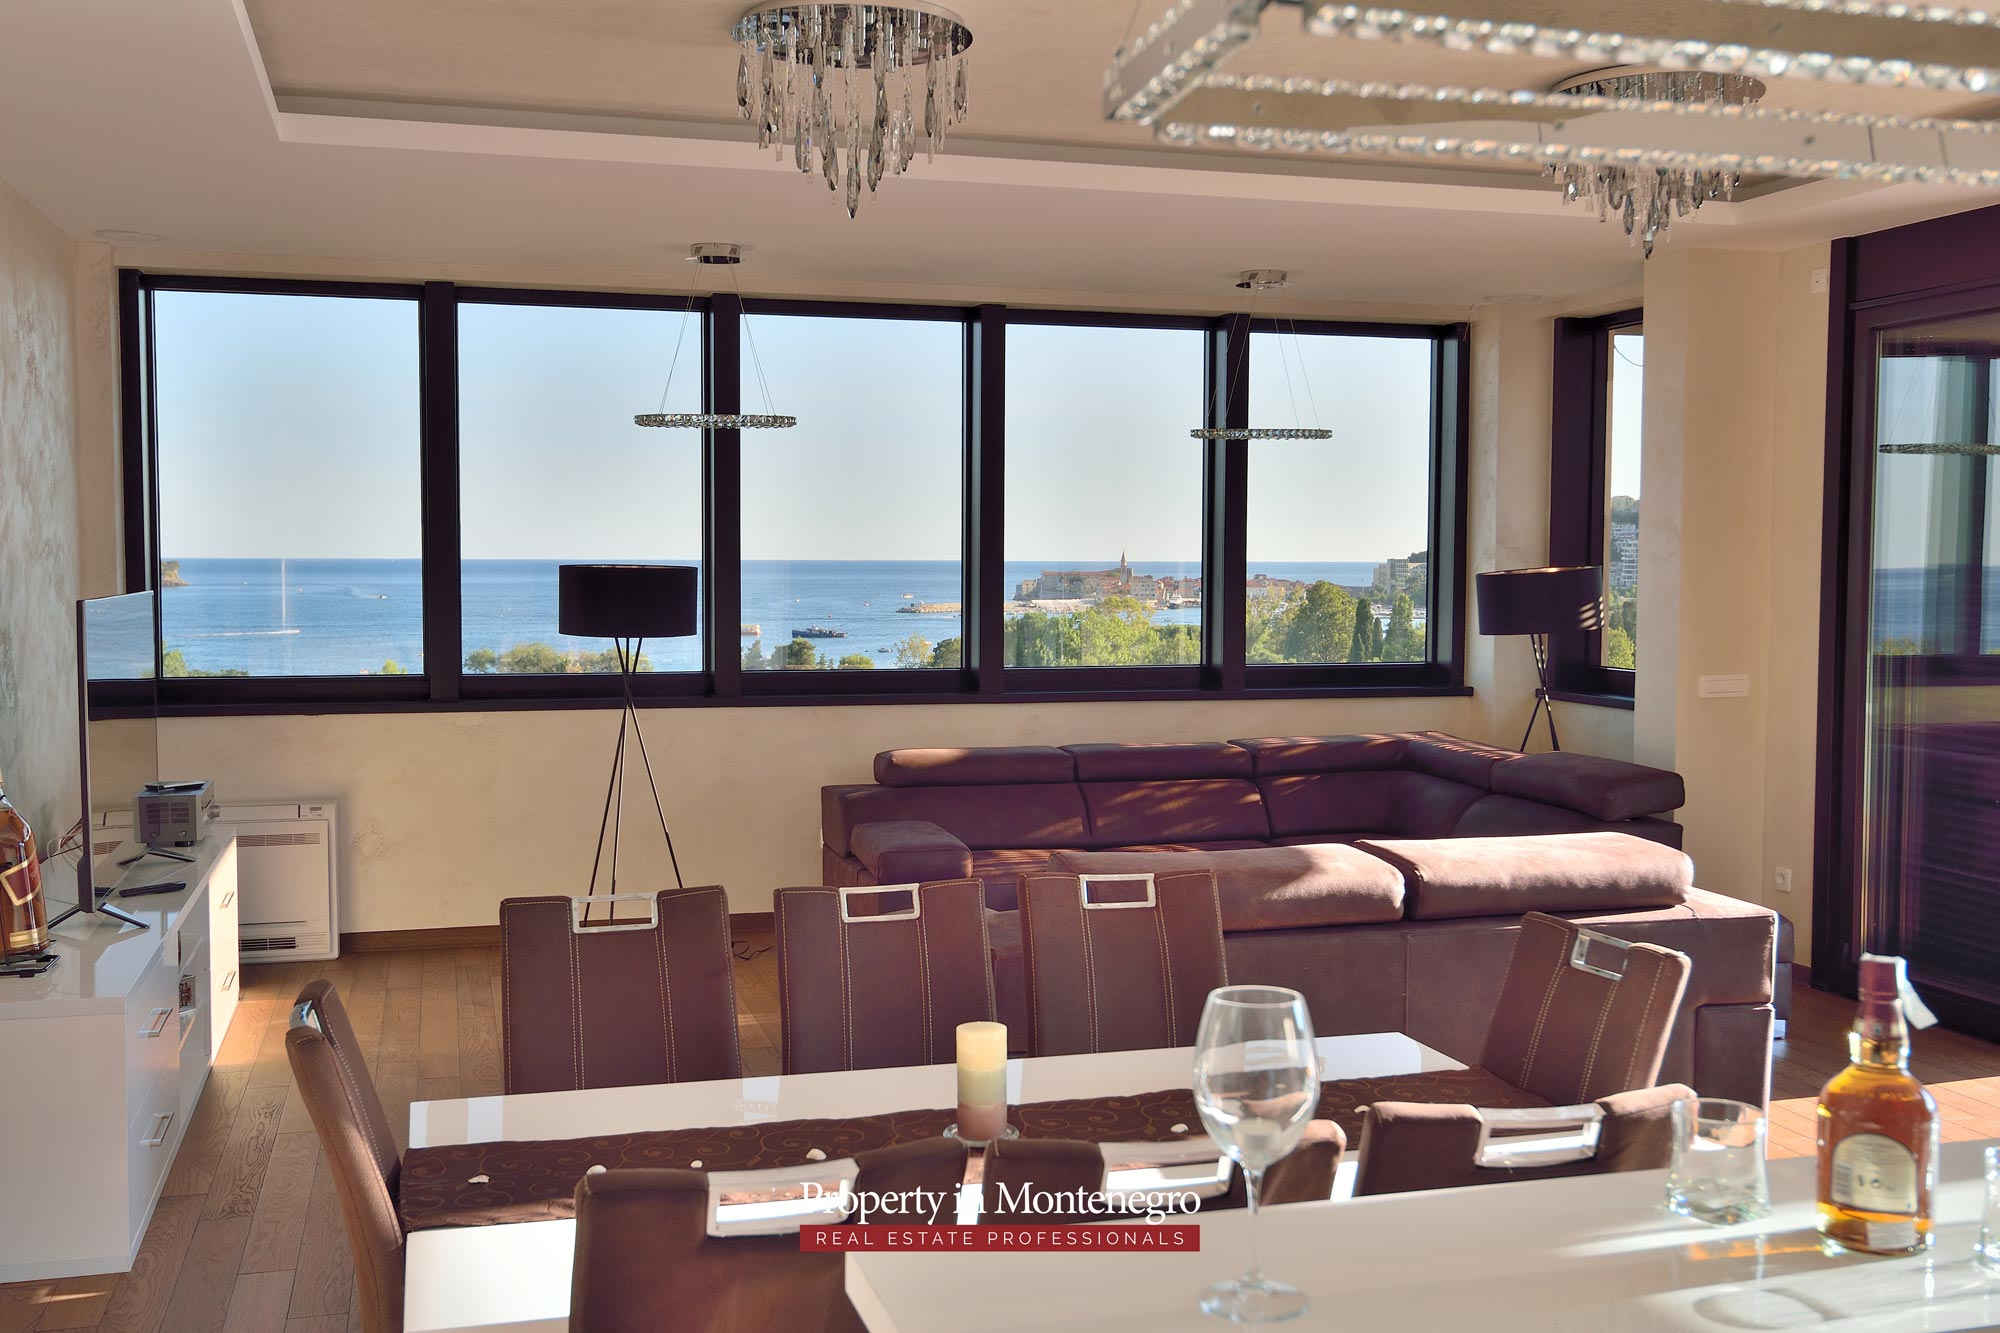 luxury-penthouse-with-panoramic-view-and-swimming-pool-for-sale-in-Budva-Montenegro (28).jpg